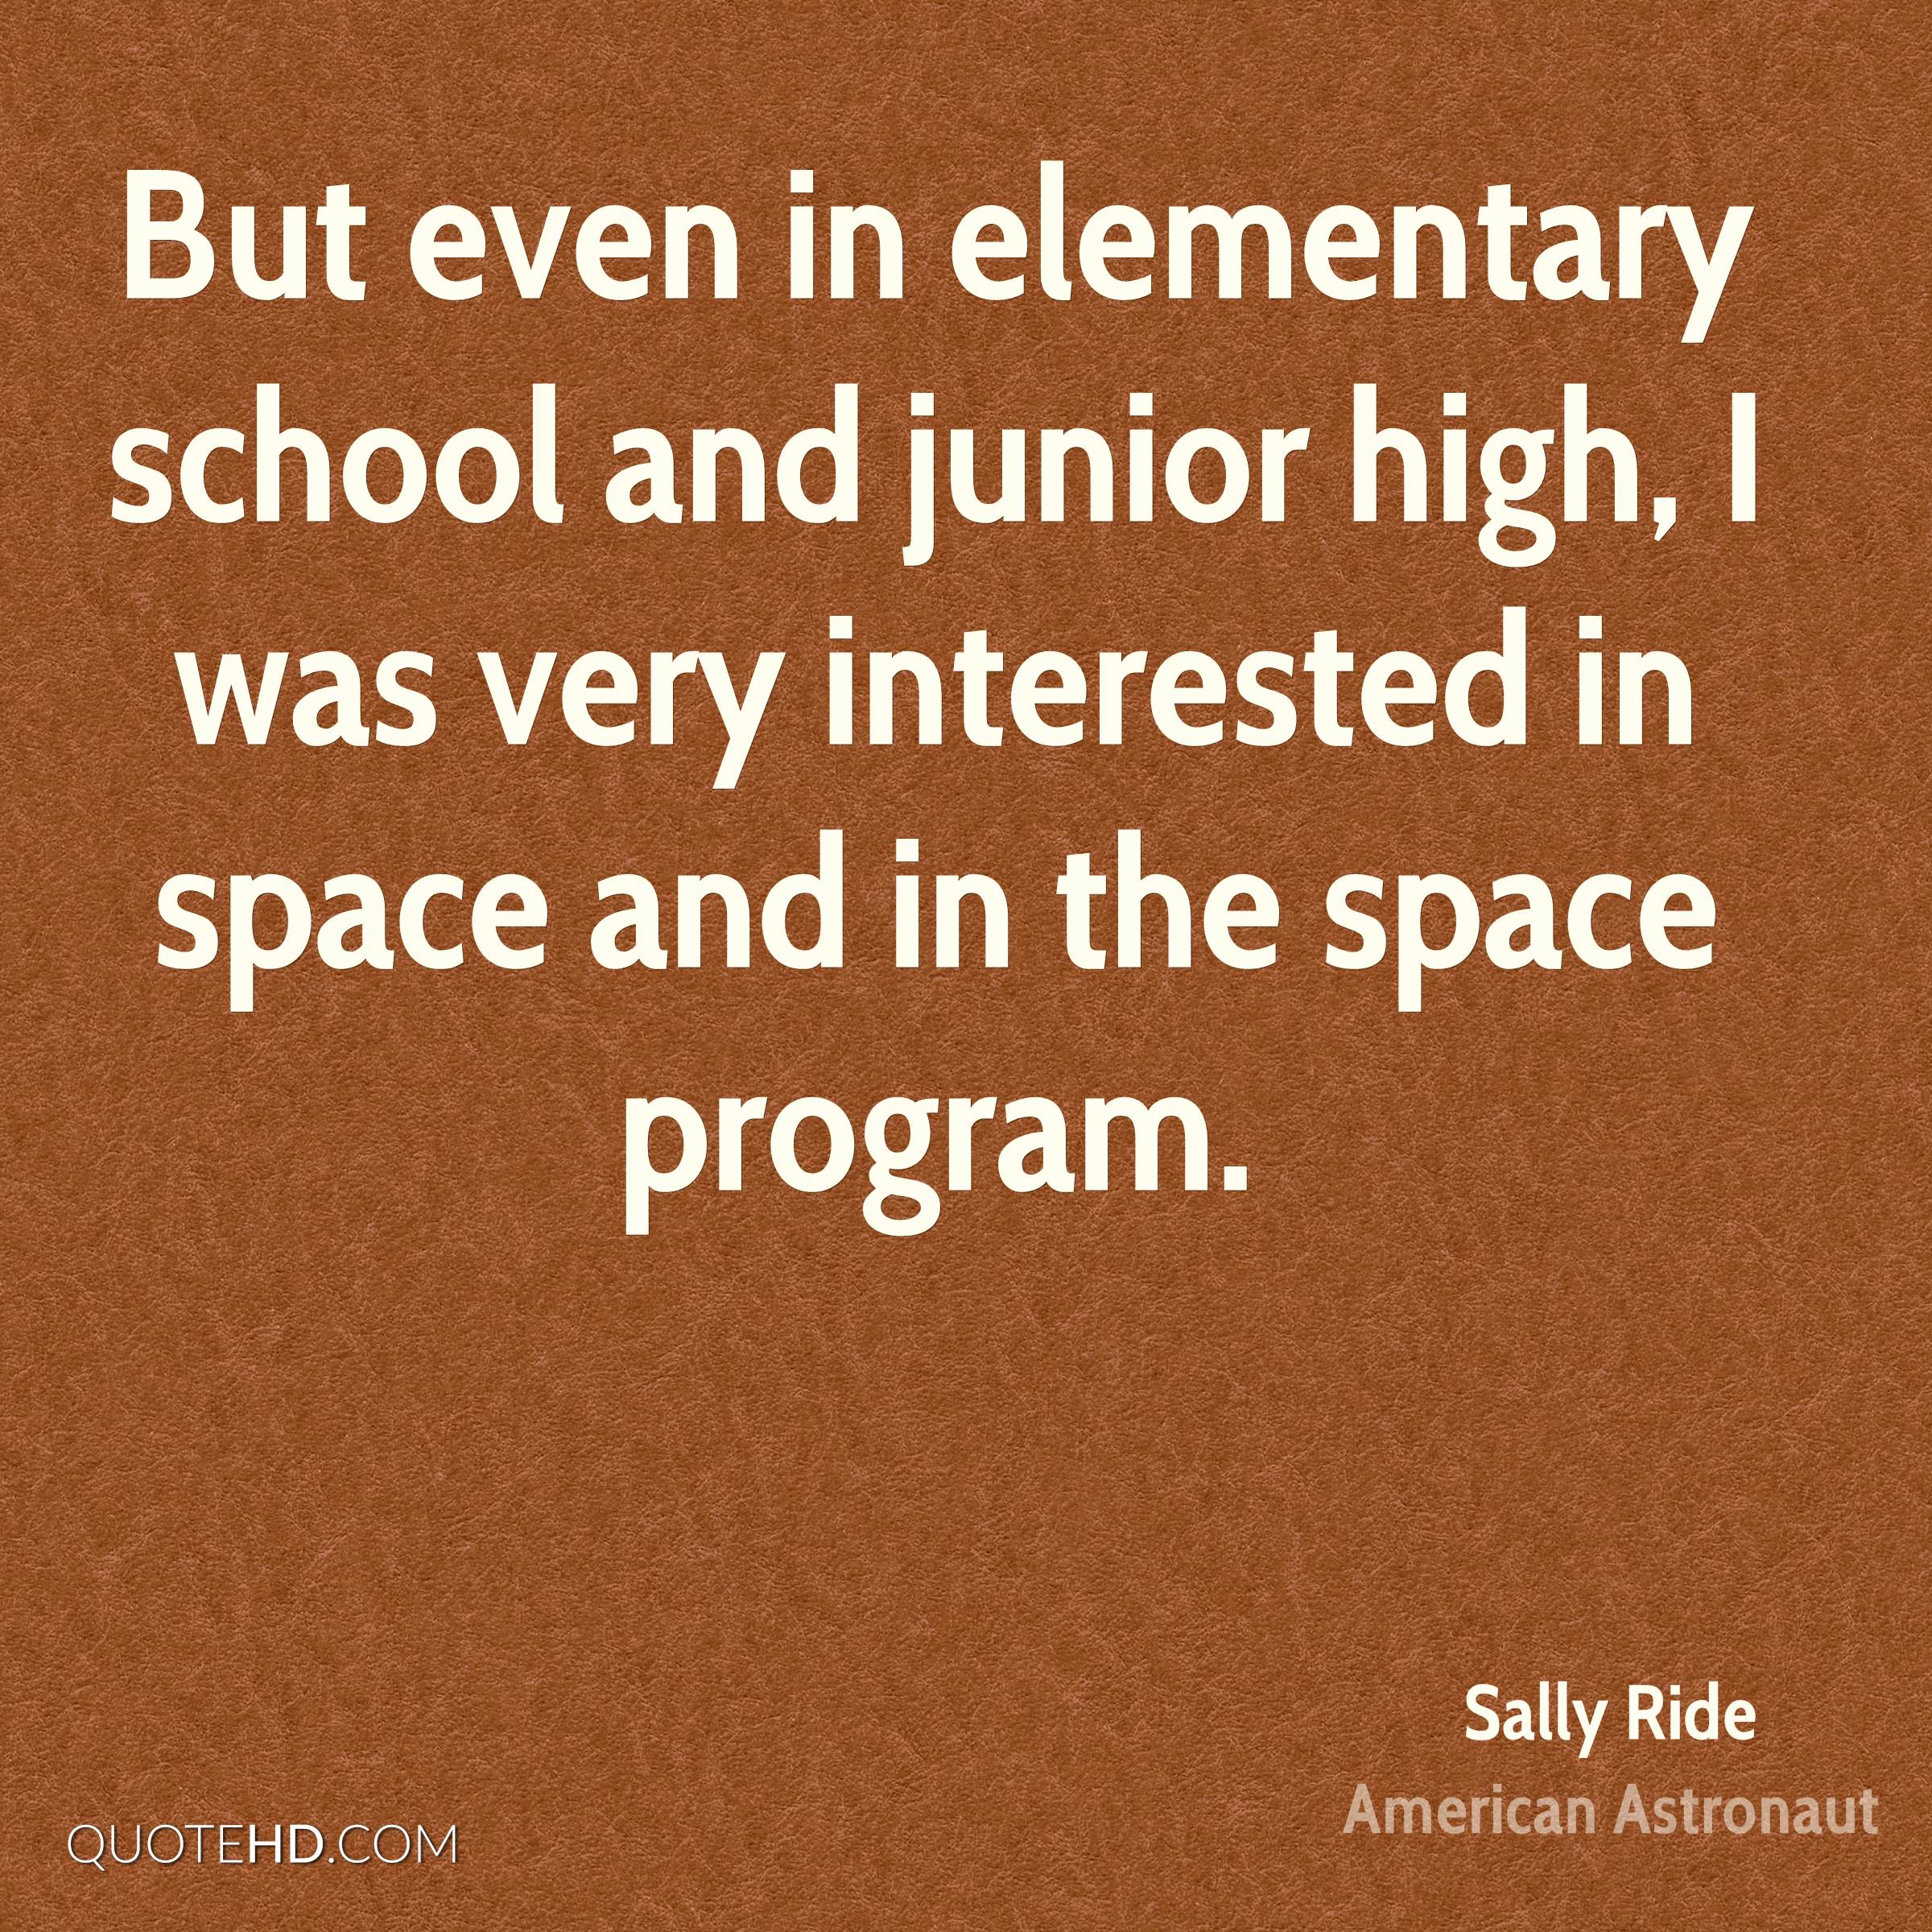 But even in elementary school and junior high, I was very interested in space and in the space program.